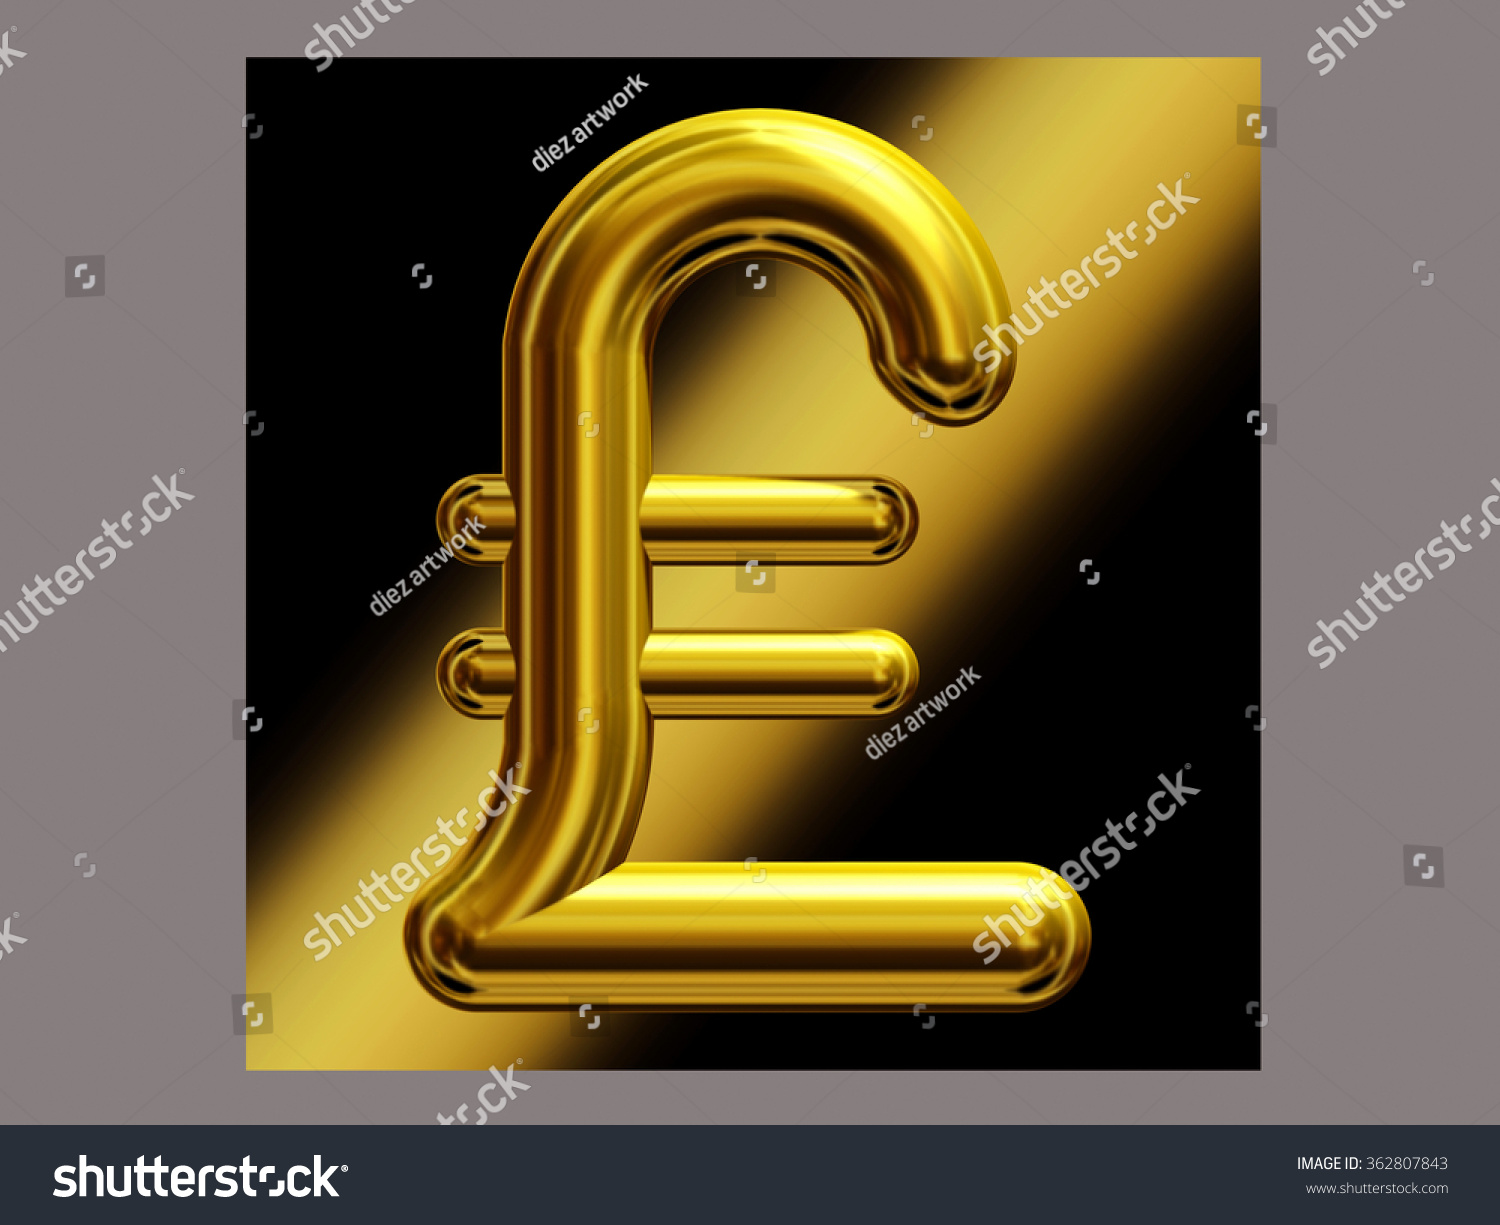 Symbol british pound currency gold stock illustration 362807843 symbol of british pound currency in gold biocorpaavc Images